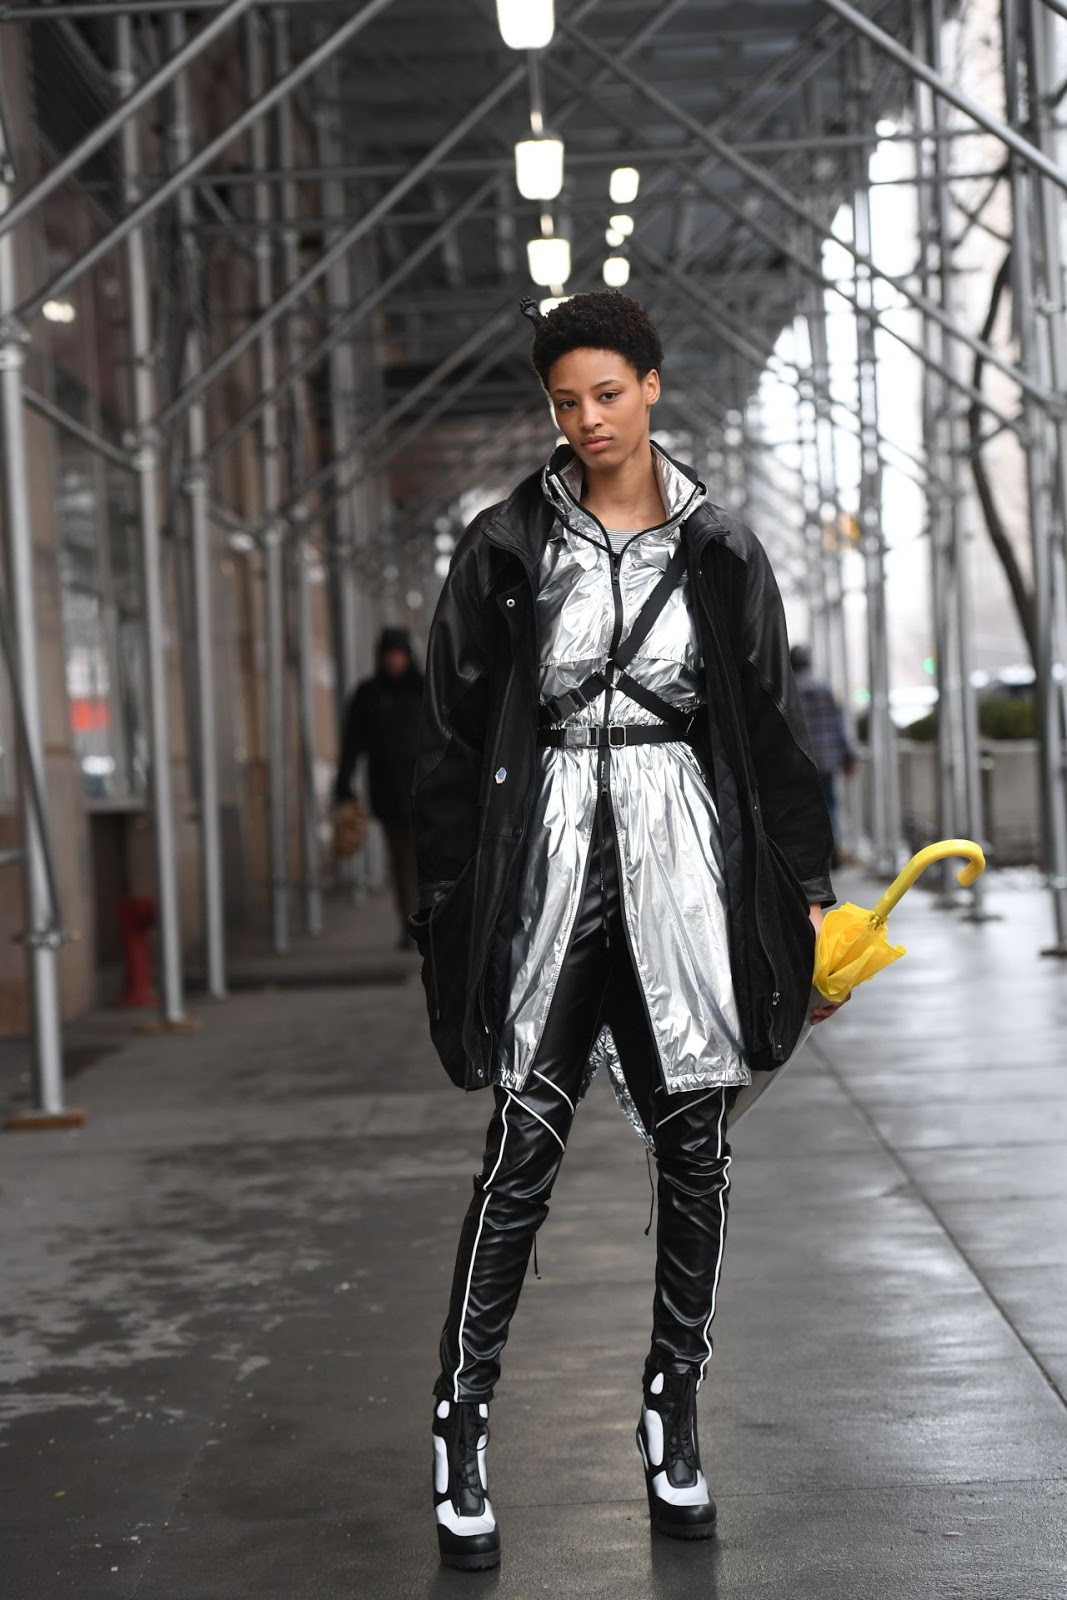 Goals: Add These Chic Metallic Pieces to Your Wardrobe